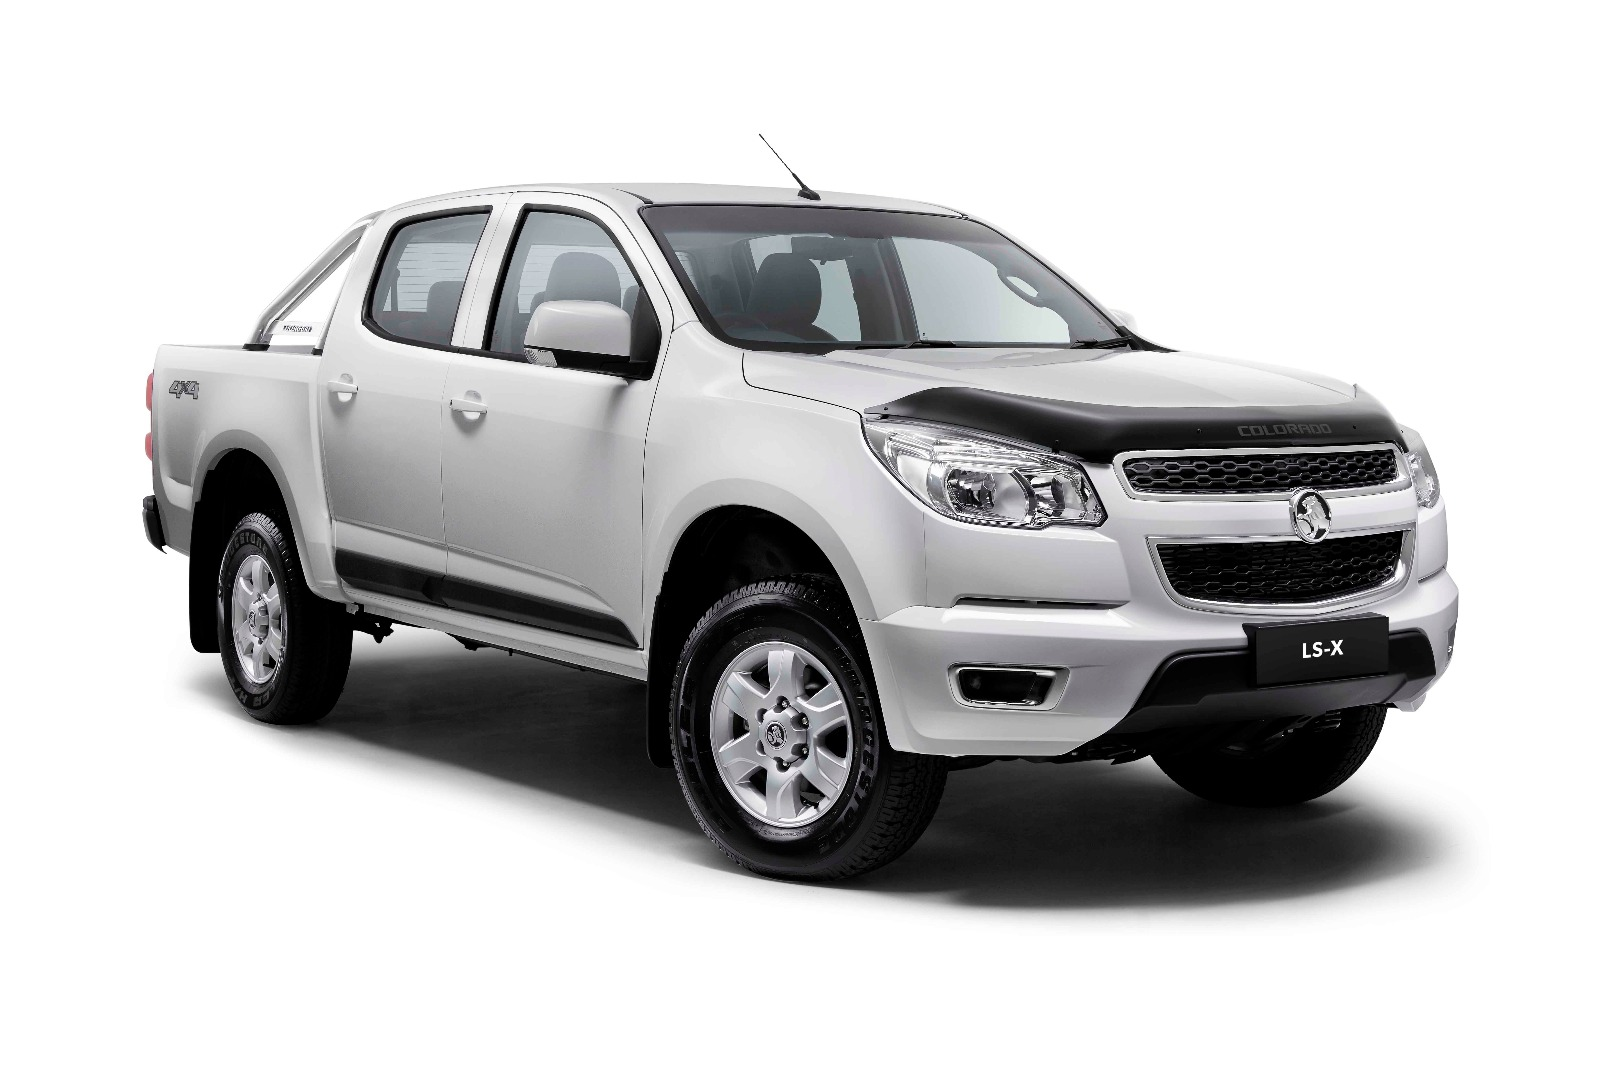 News Holden Expands Colorado Range With New Ls X